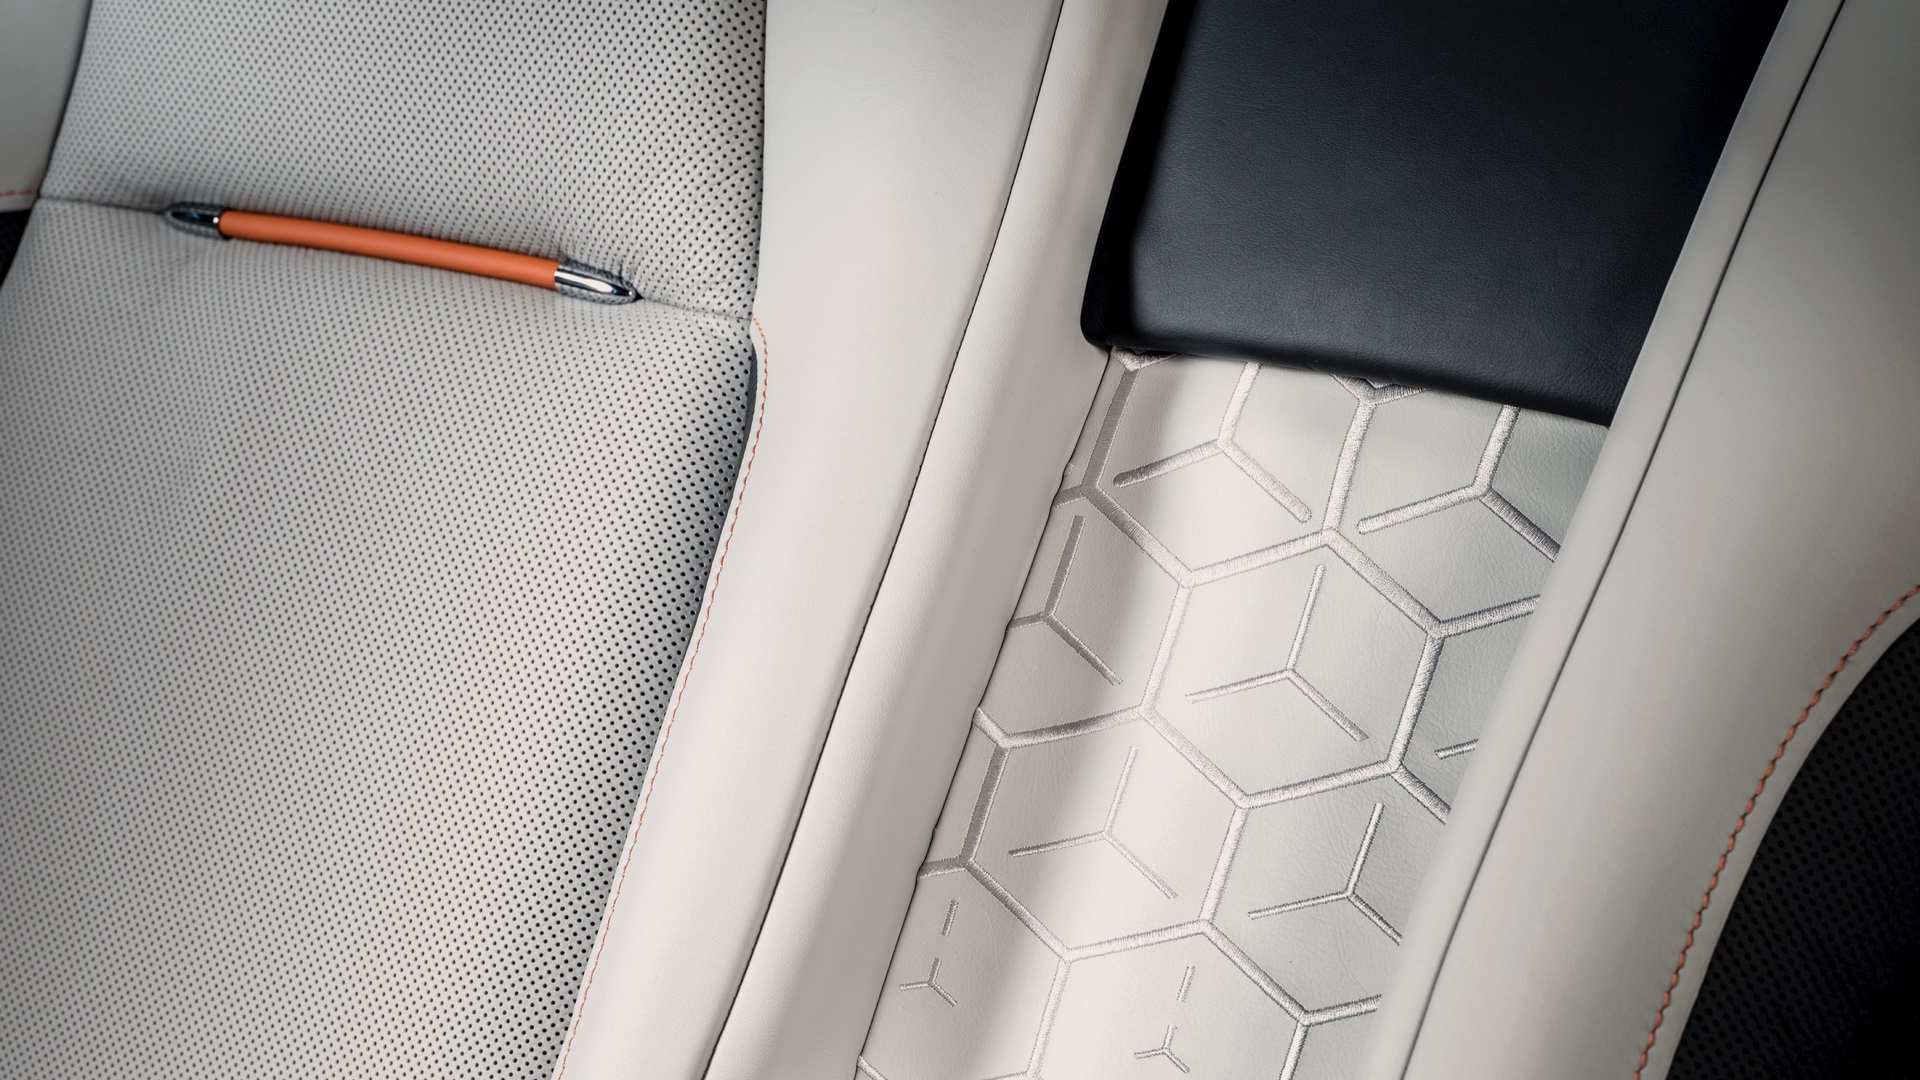 Rolls-Royce Wraith Nebula collection, close up of seat detail